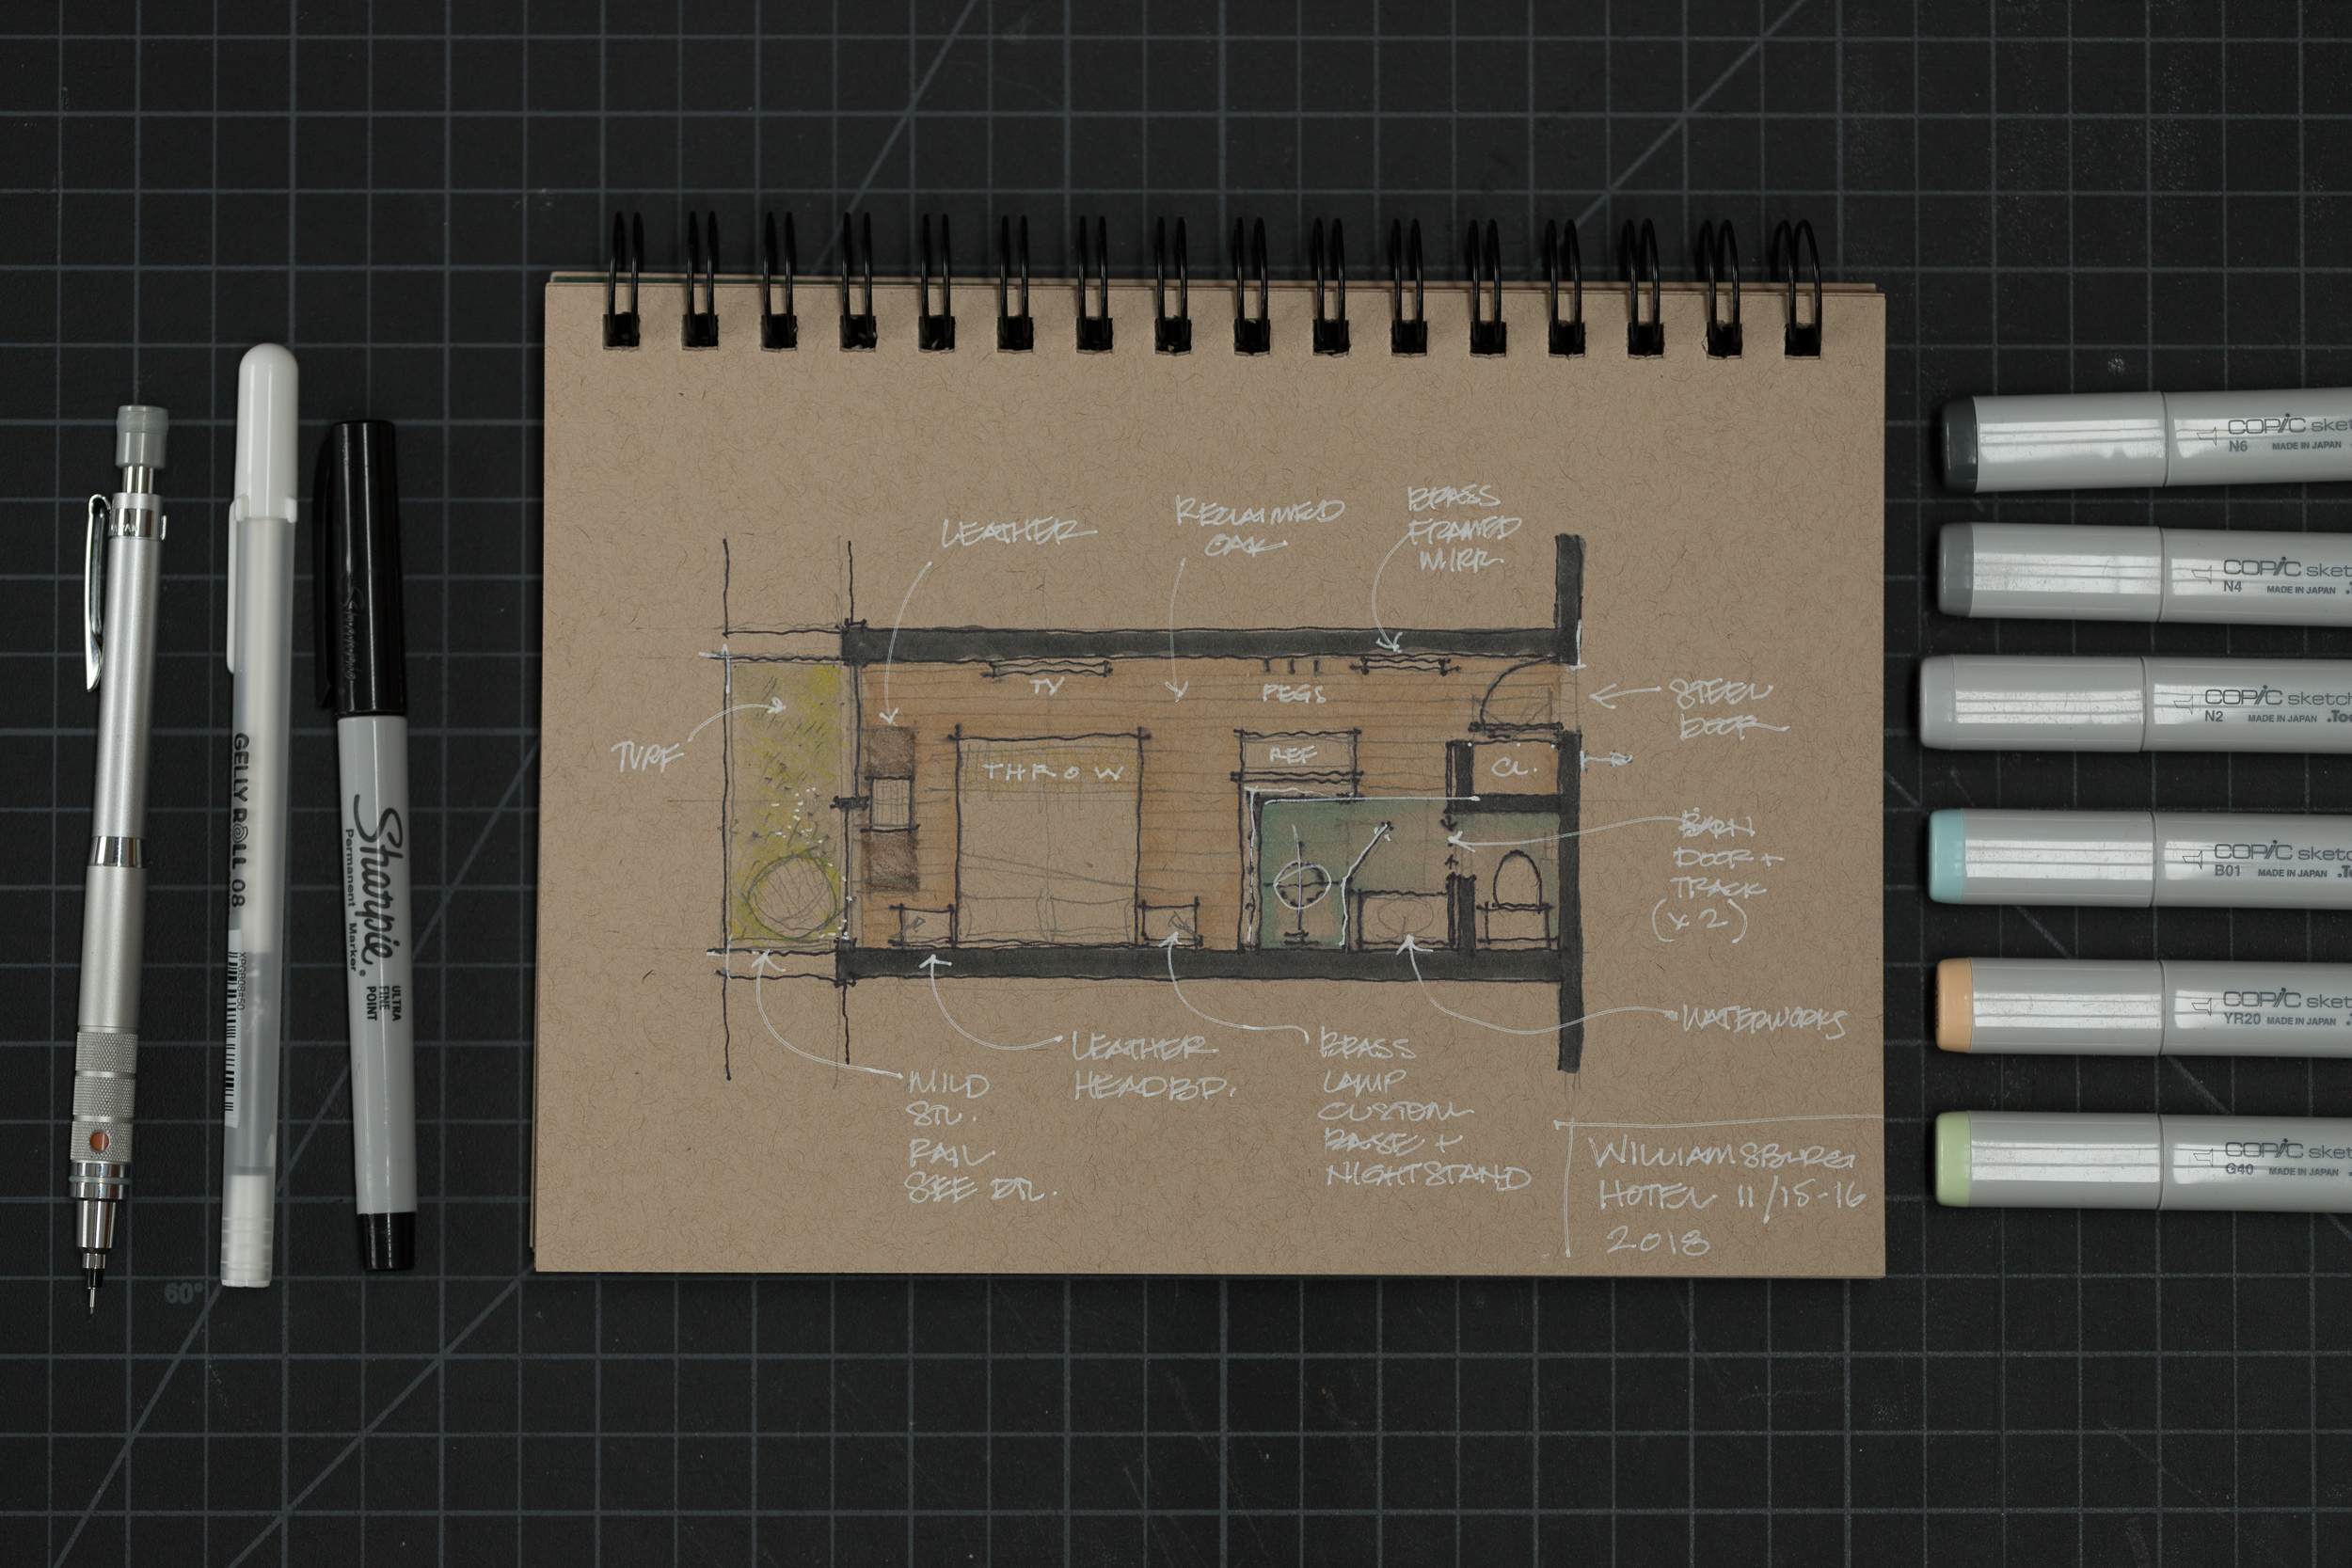 williamsburg-hotel-plan-sketch.jpg